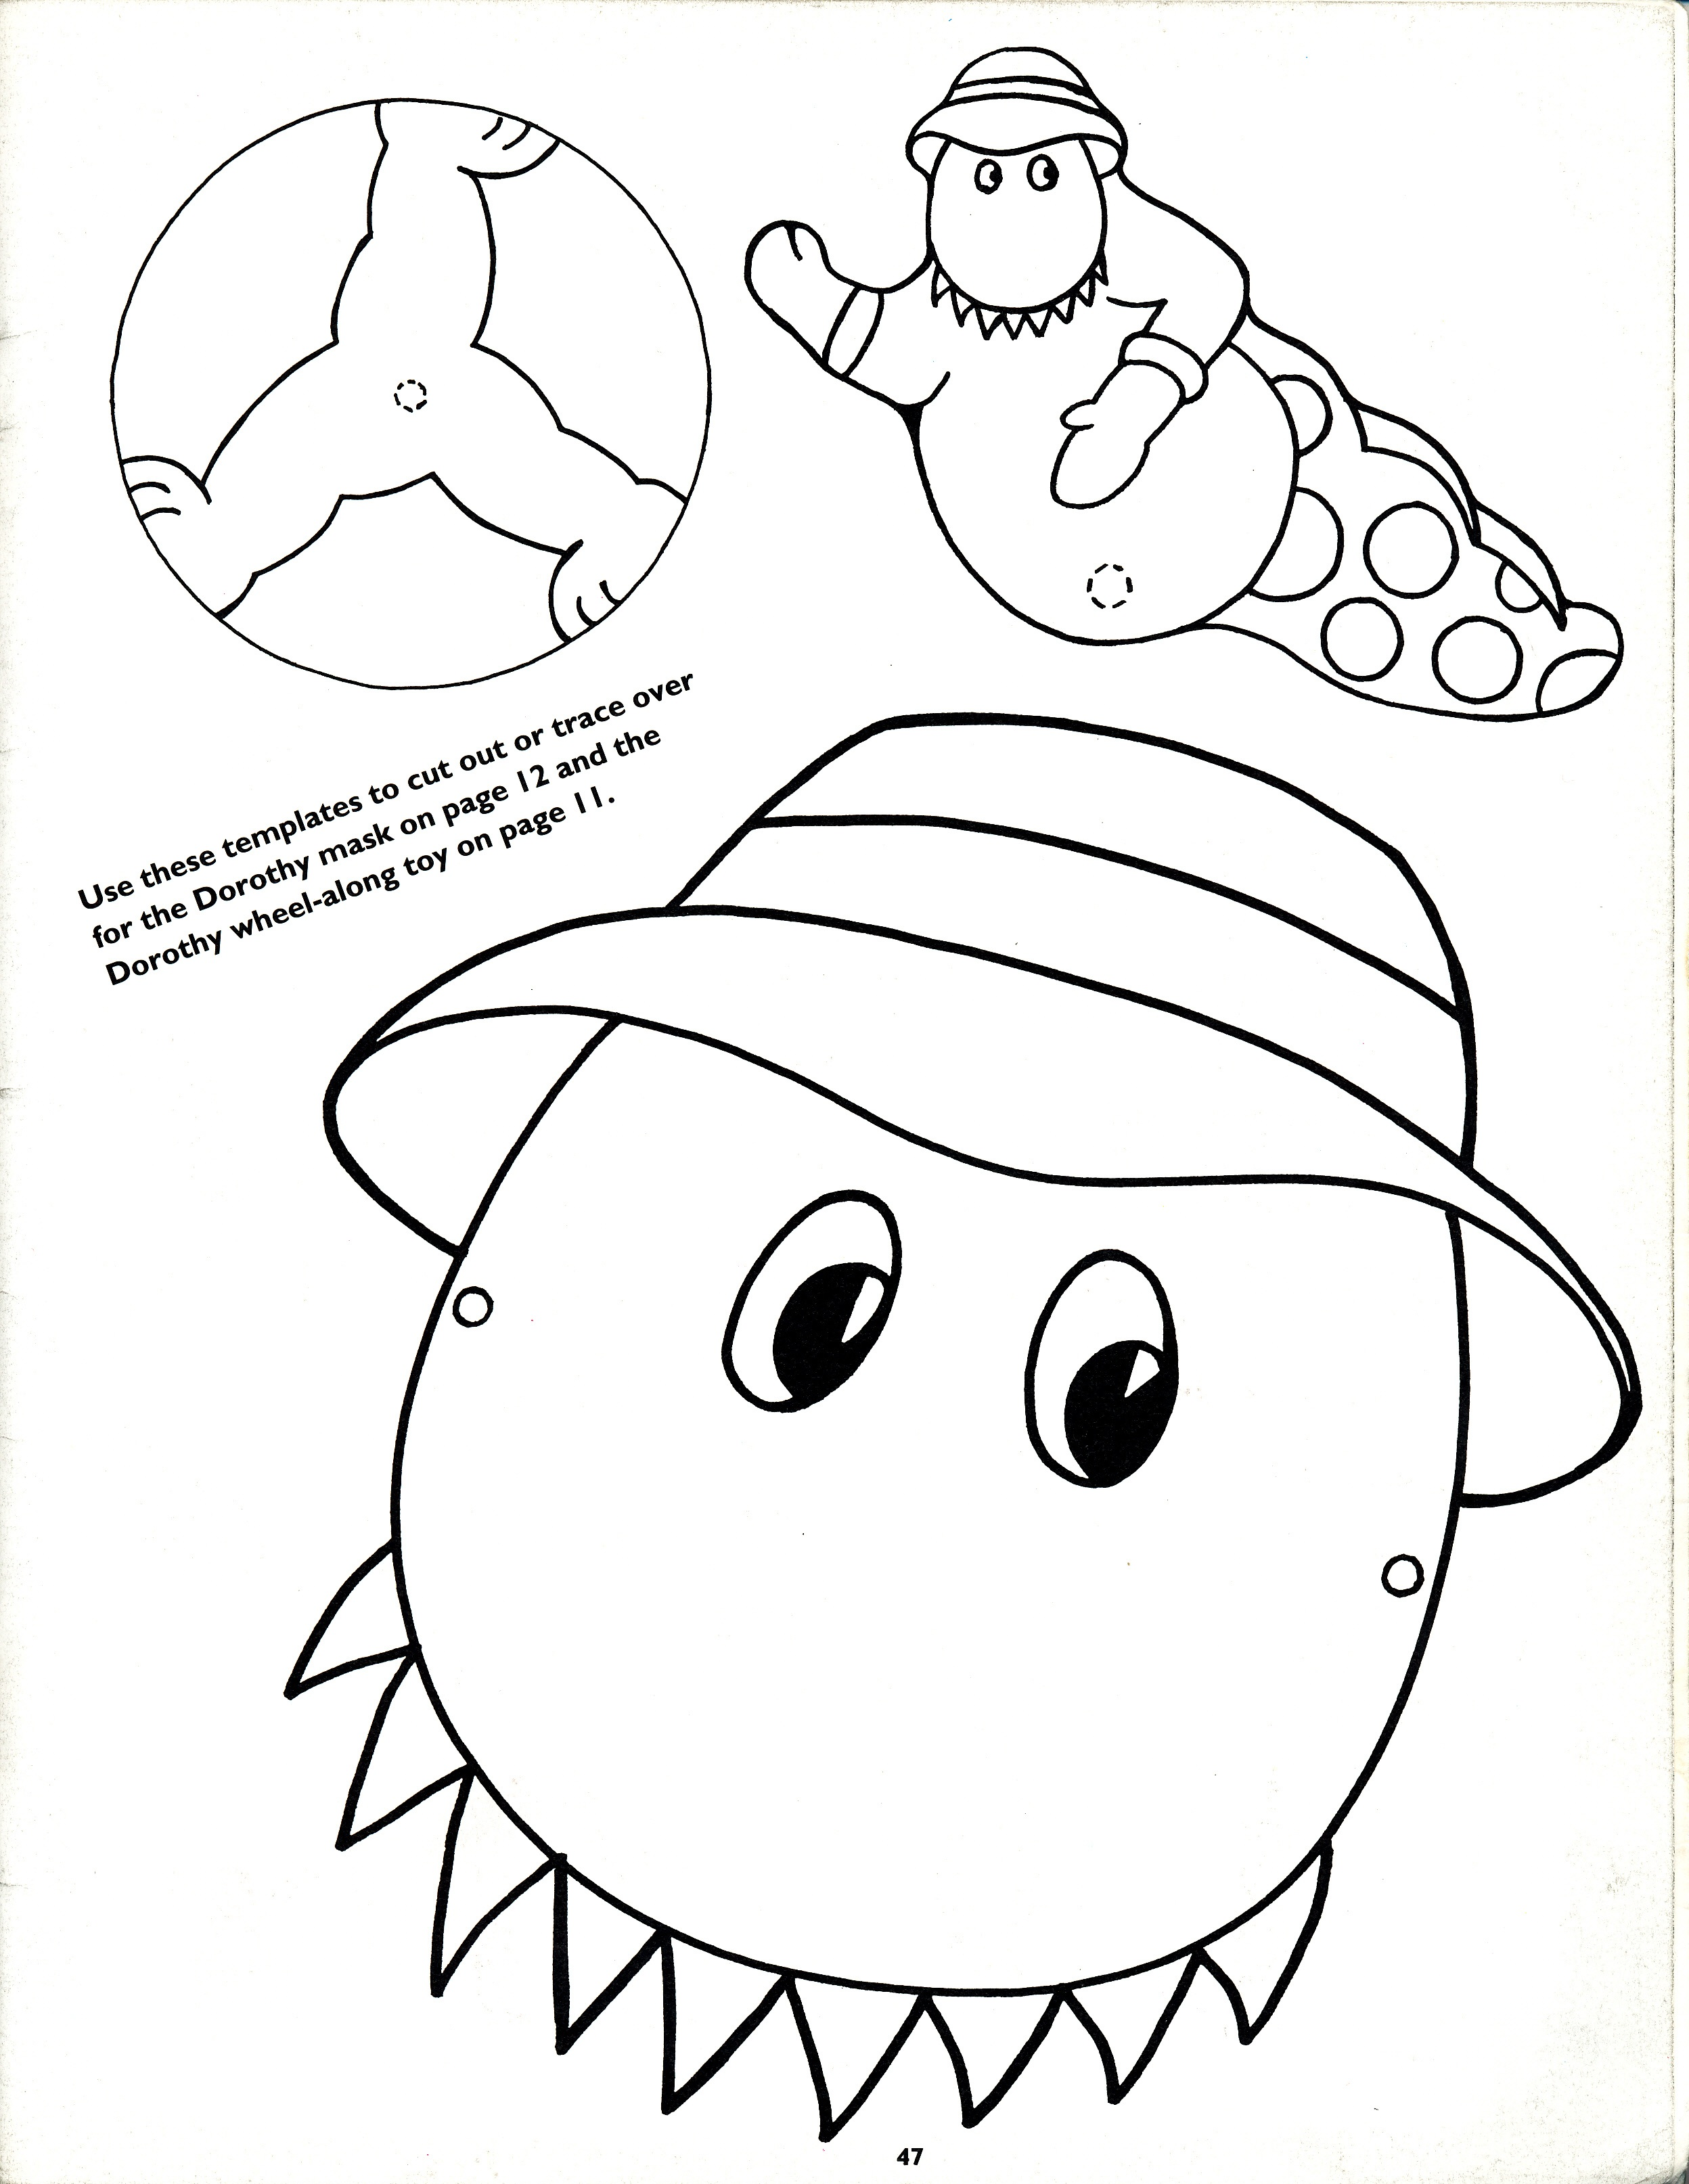 Coloring Pages Clifford The Big Red Dog Coloring Pages Printable clifford the big red dog coloring pages printable futpal com page dog